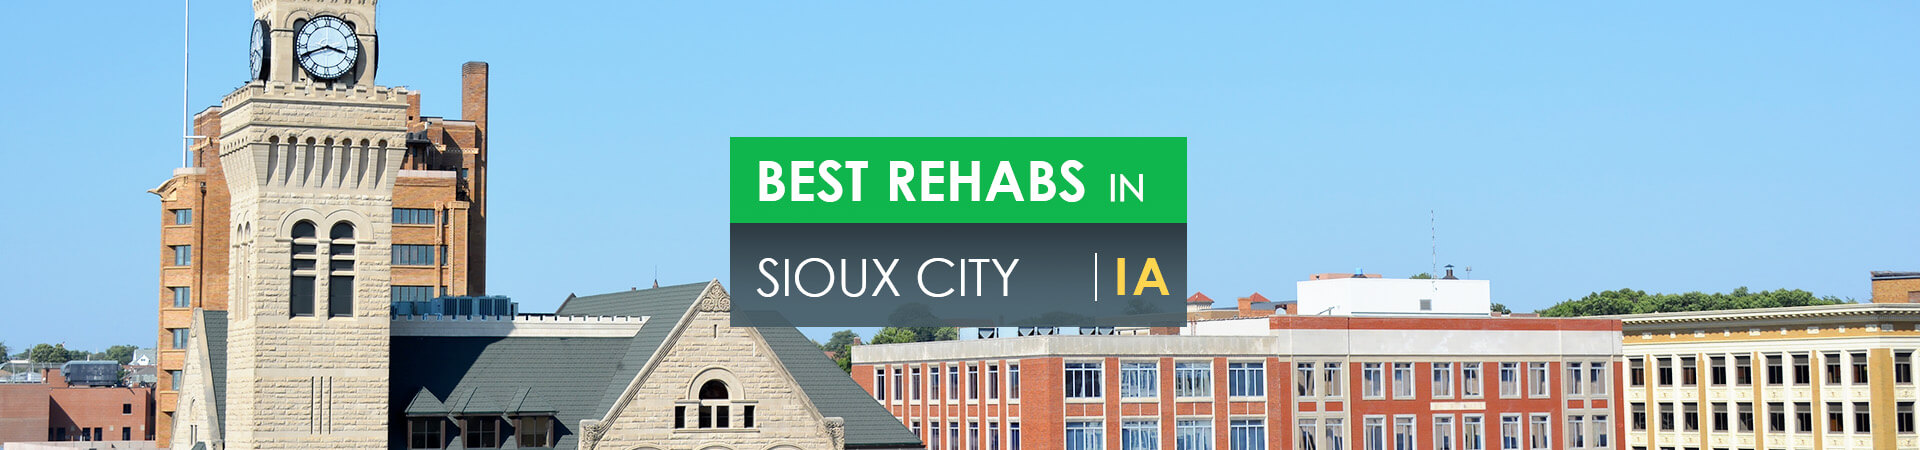 Best rehabs in Sioux City, IA